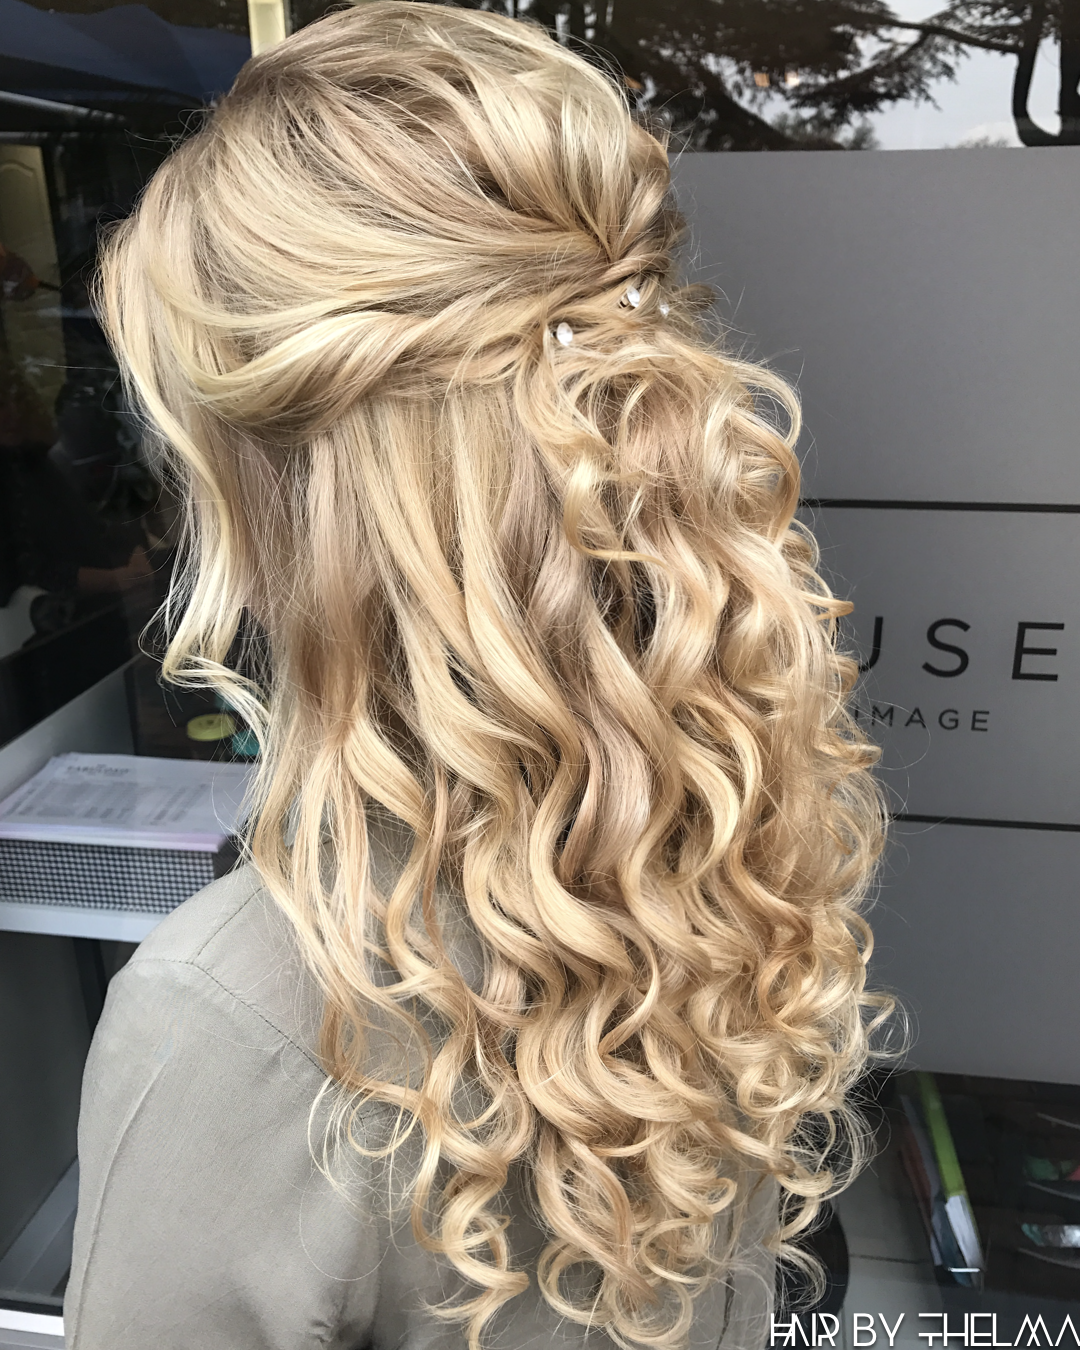 Prom Hairstyle Adorable My Best Hairstyle  Pinterest  Prom Hair Long Hairstyle And Hair Style